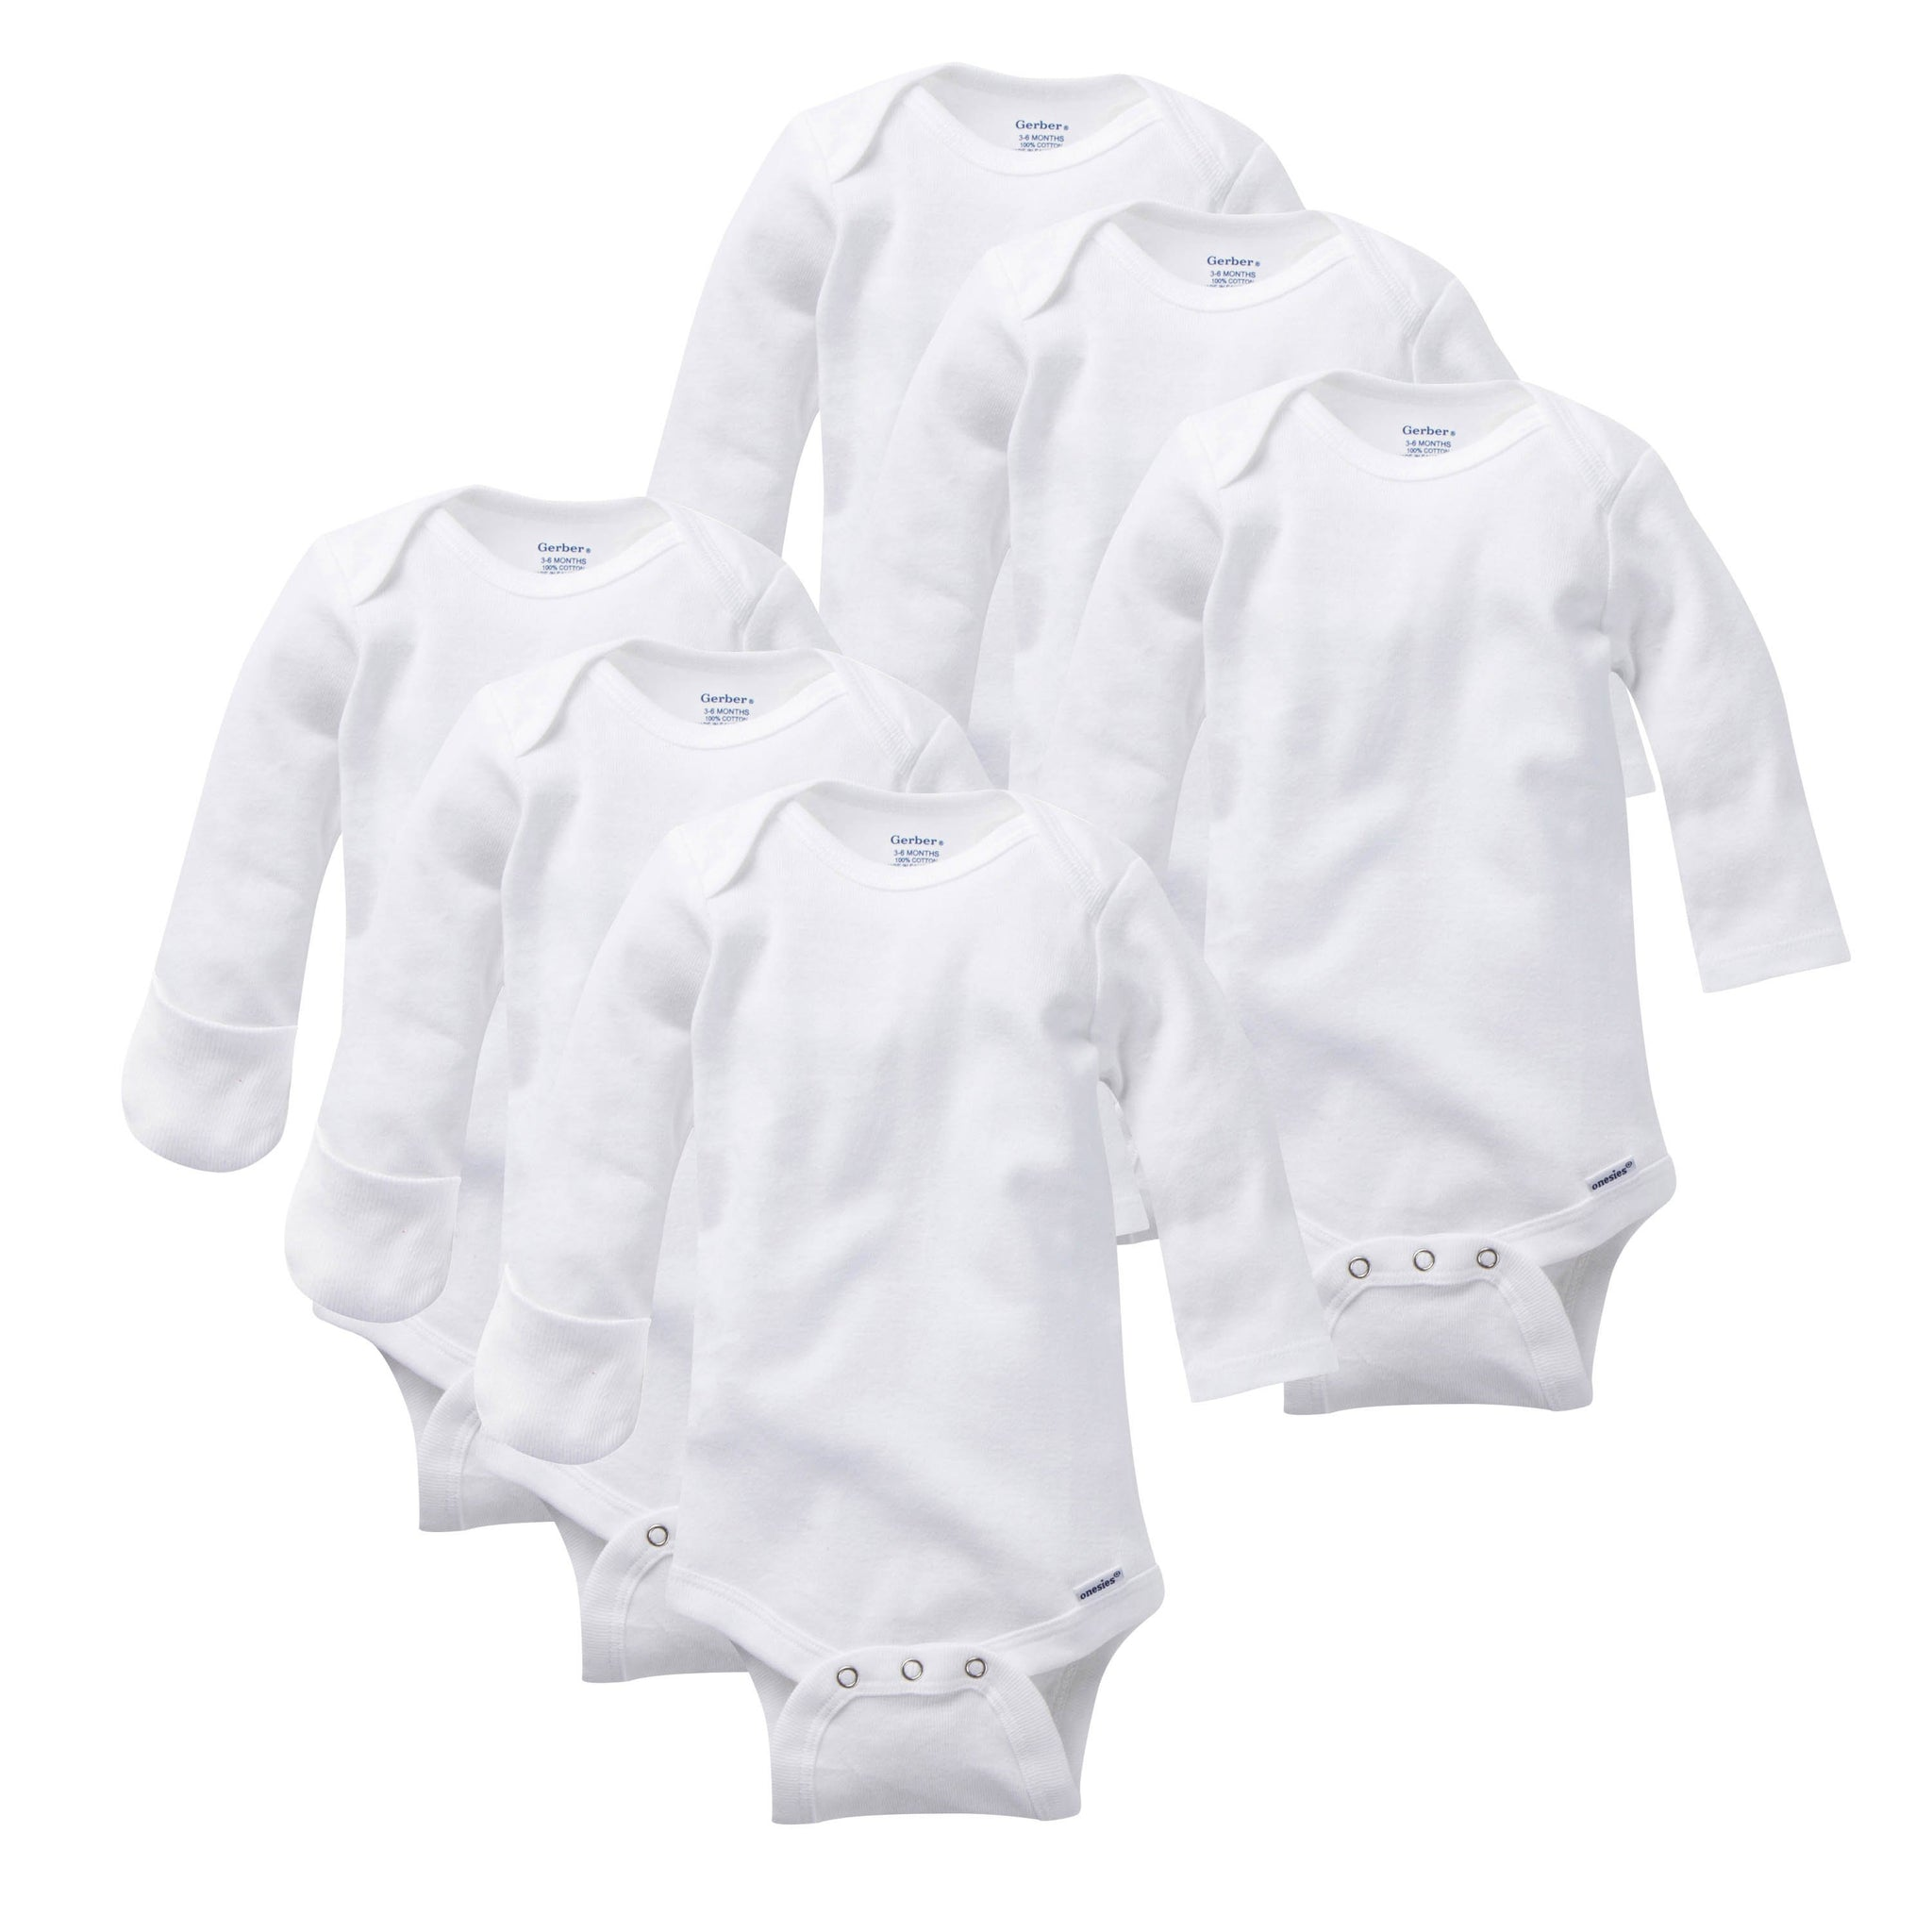 6-Pack Baby White Long-Sleeve Mitten-Cuff Onesies Bodysuits